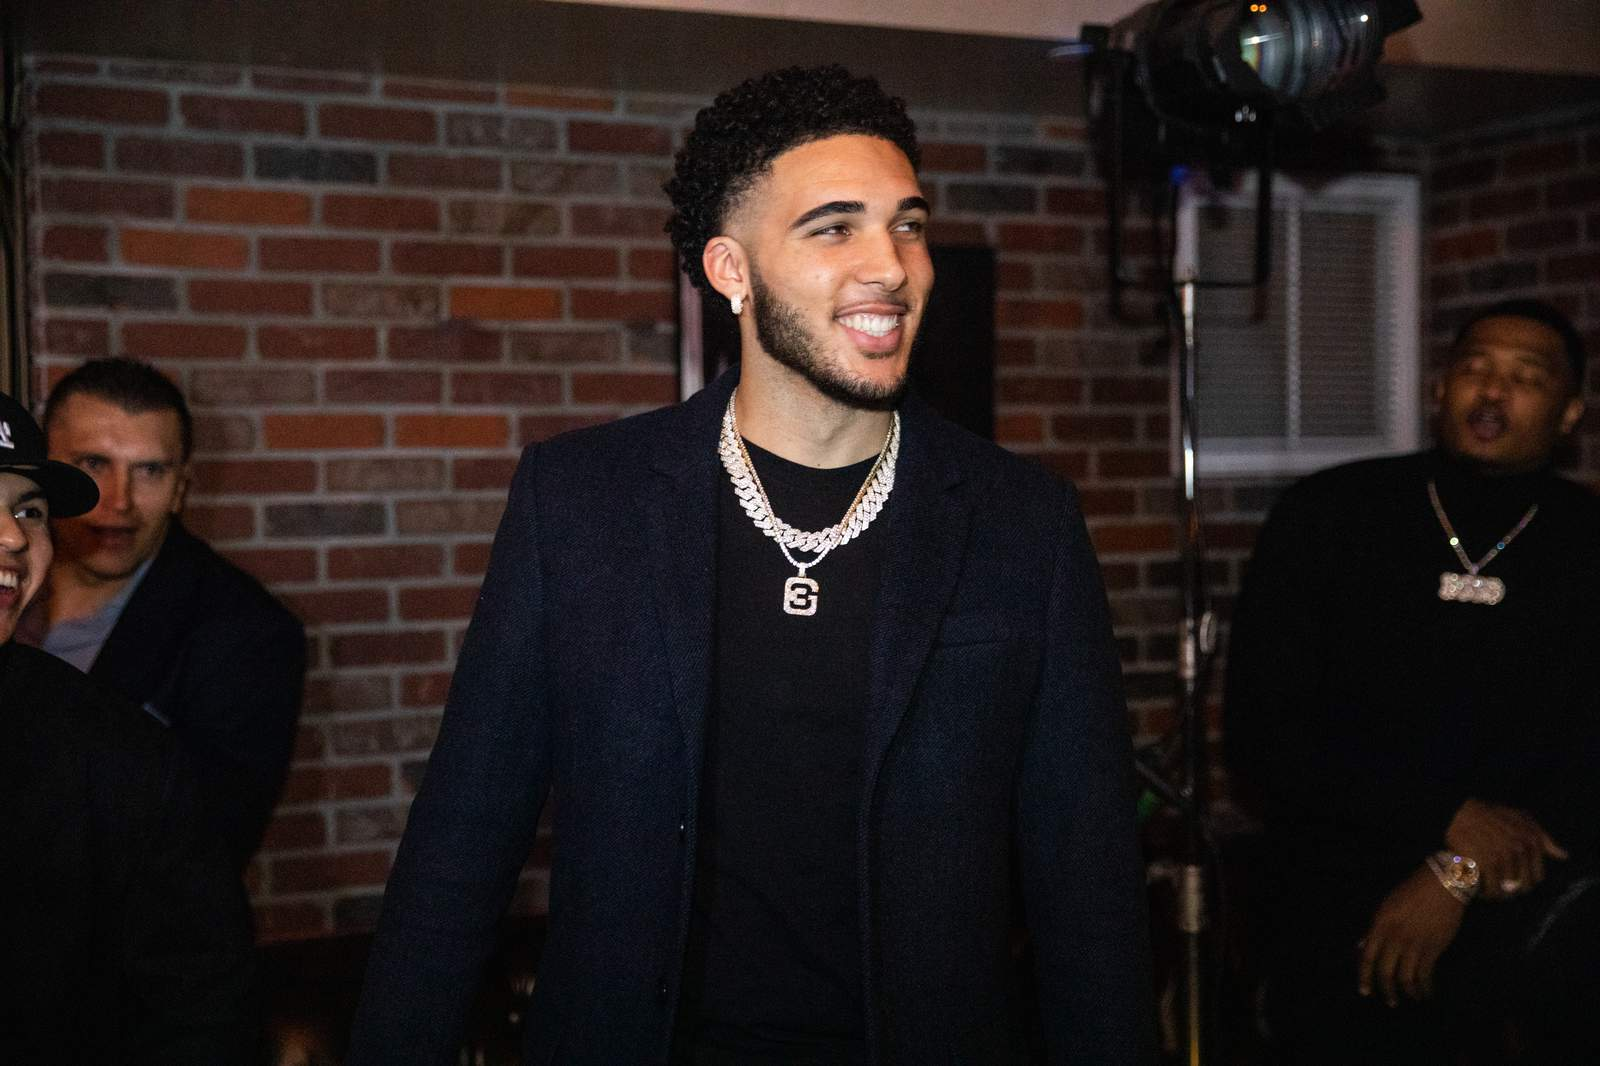 Who is LiAngelo Ball and will he form the team?